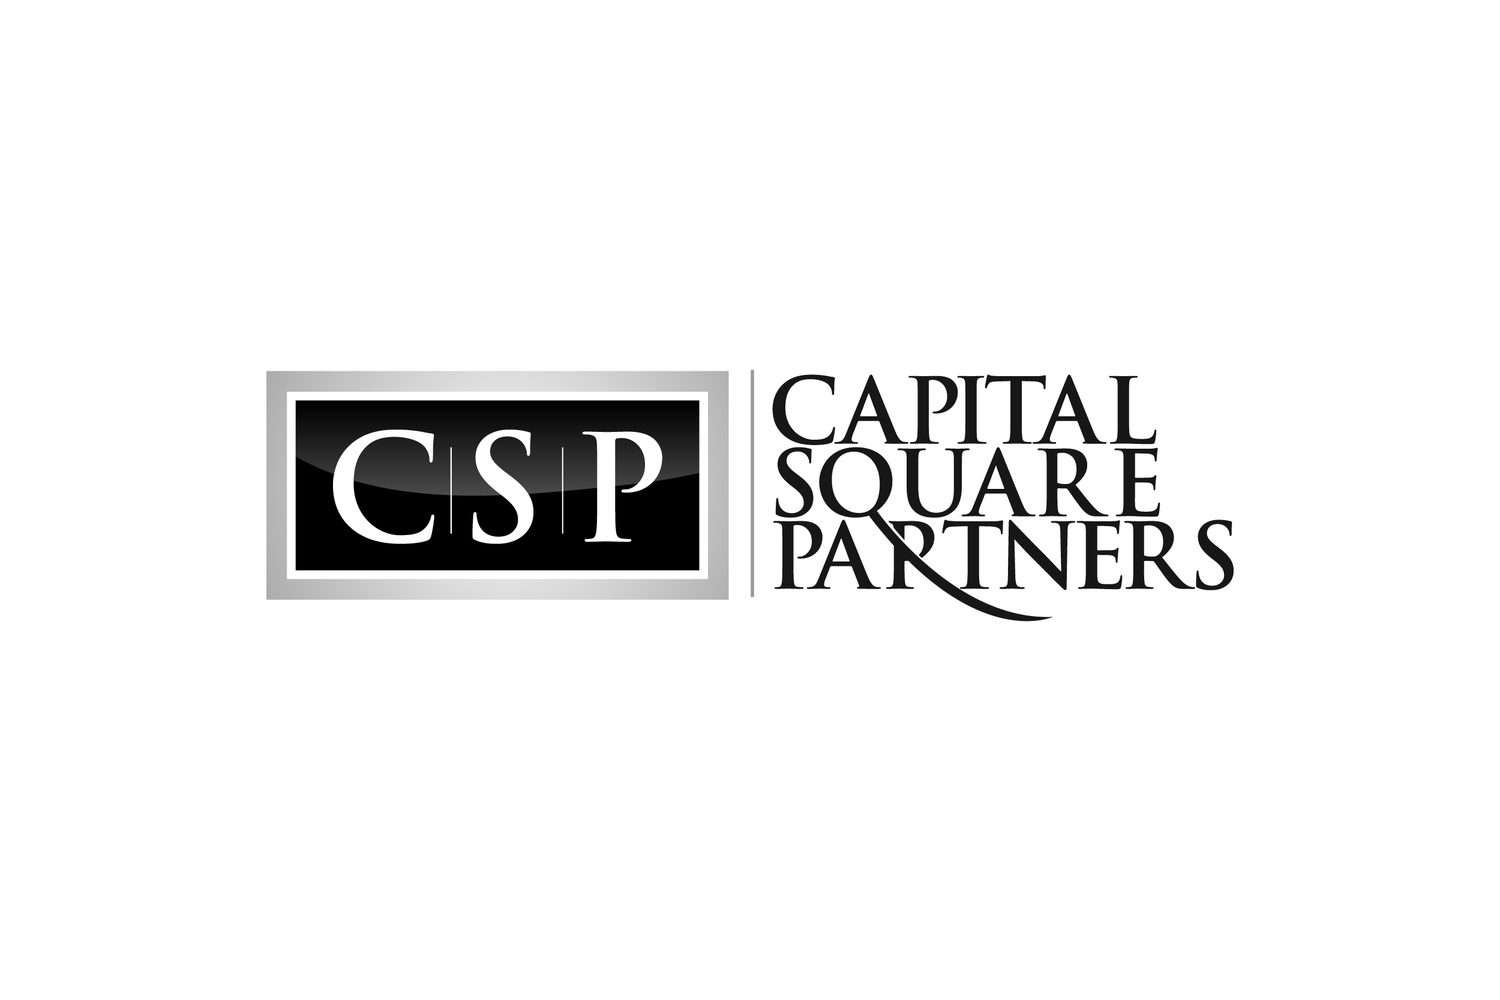 Capital Square Partners